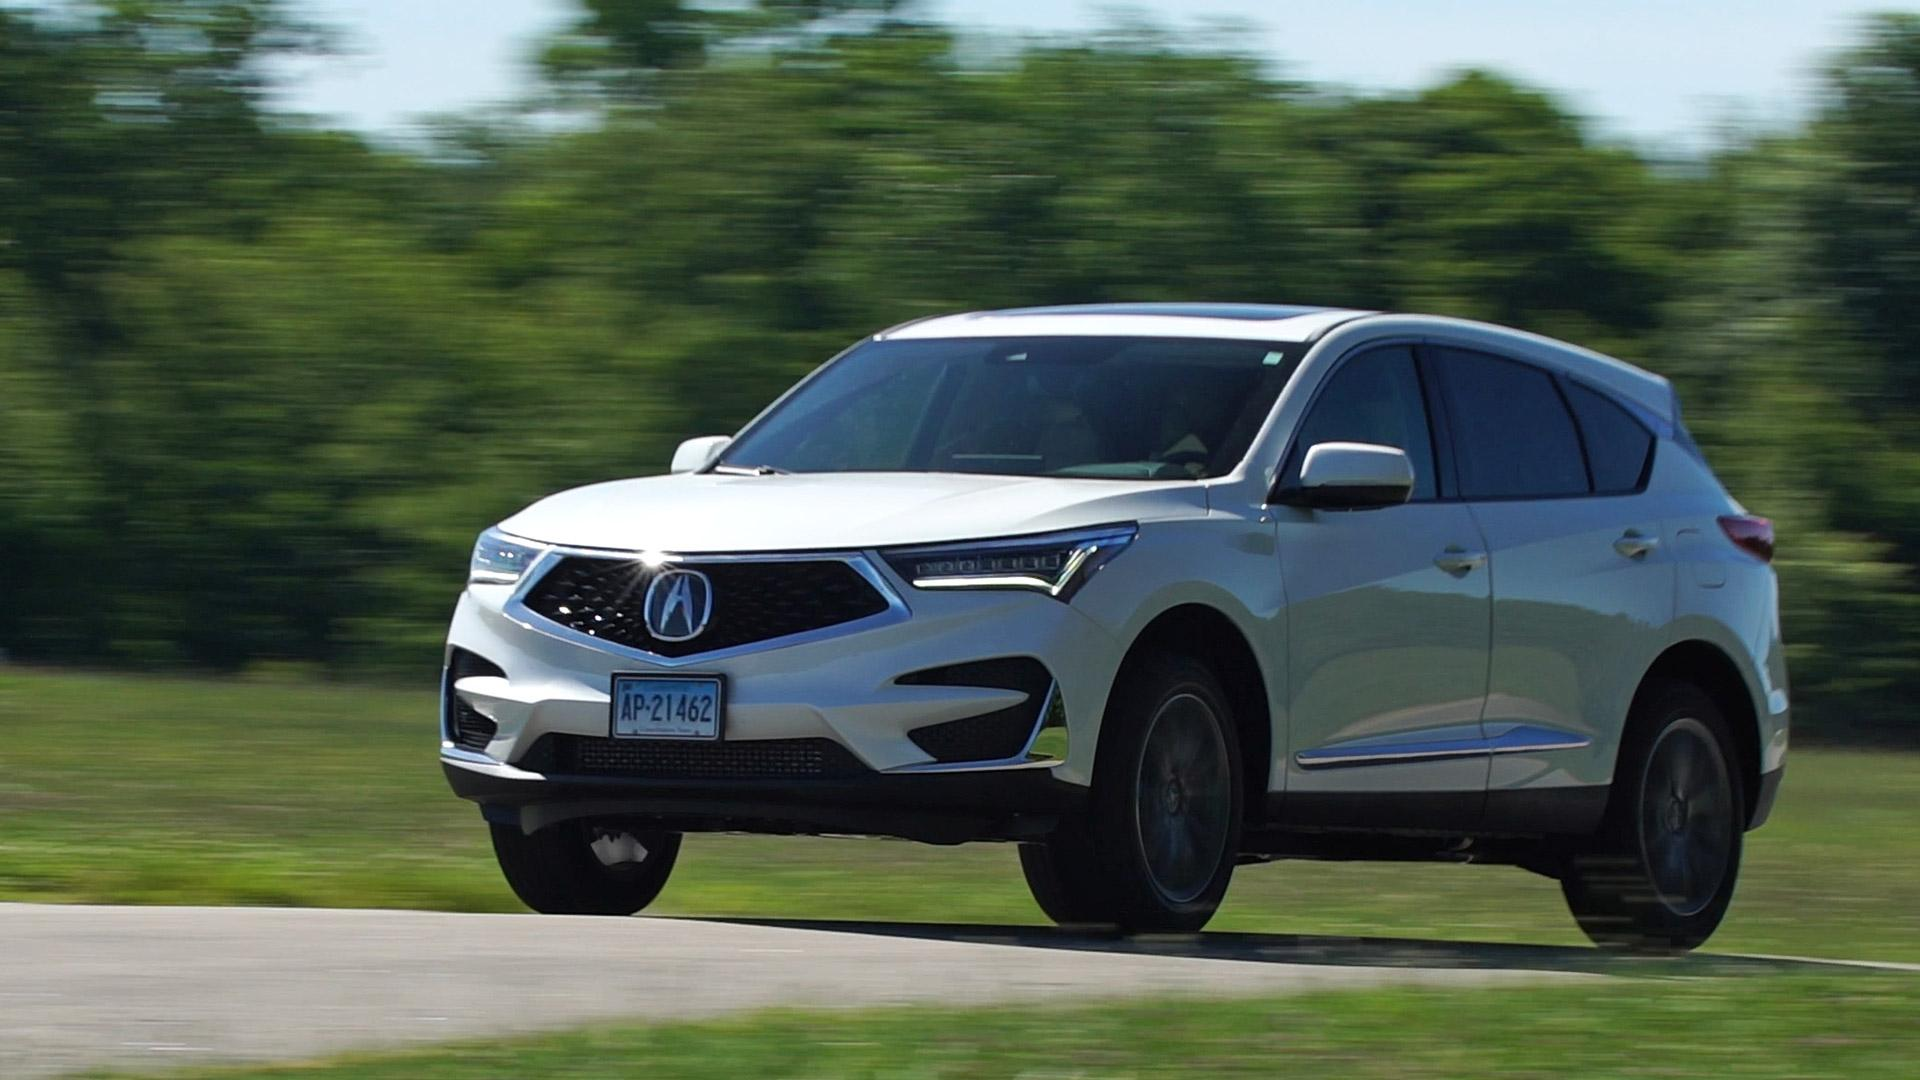 hight resolution of all new 2019 acura rdx shines with peppy engine improved ride and handling